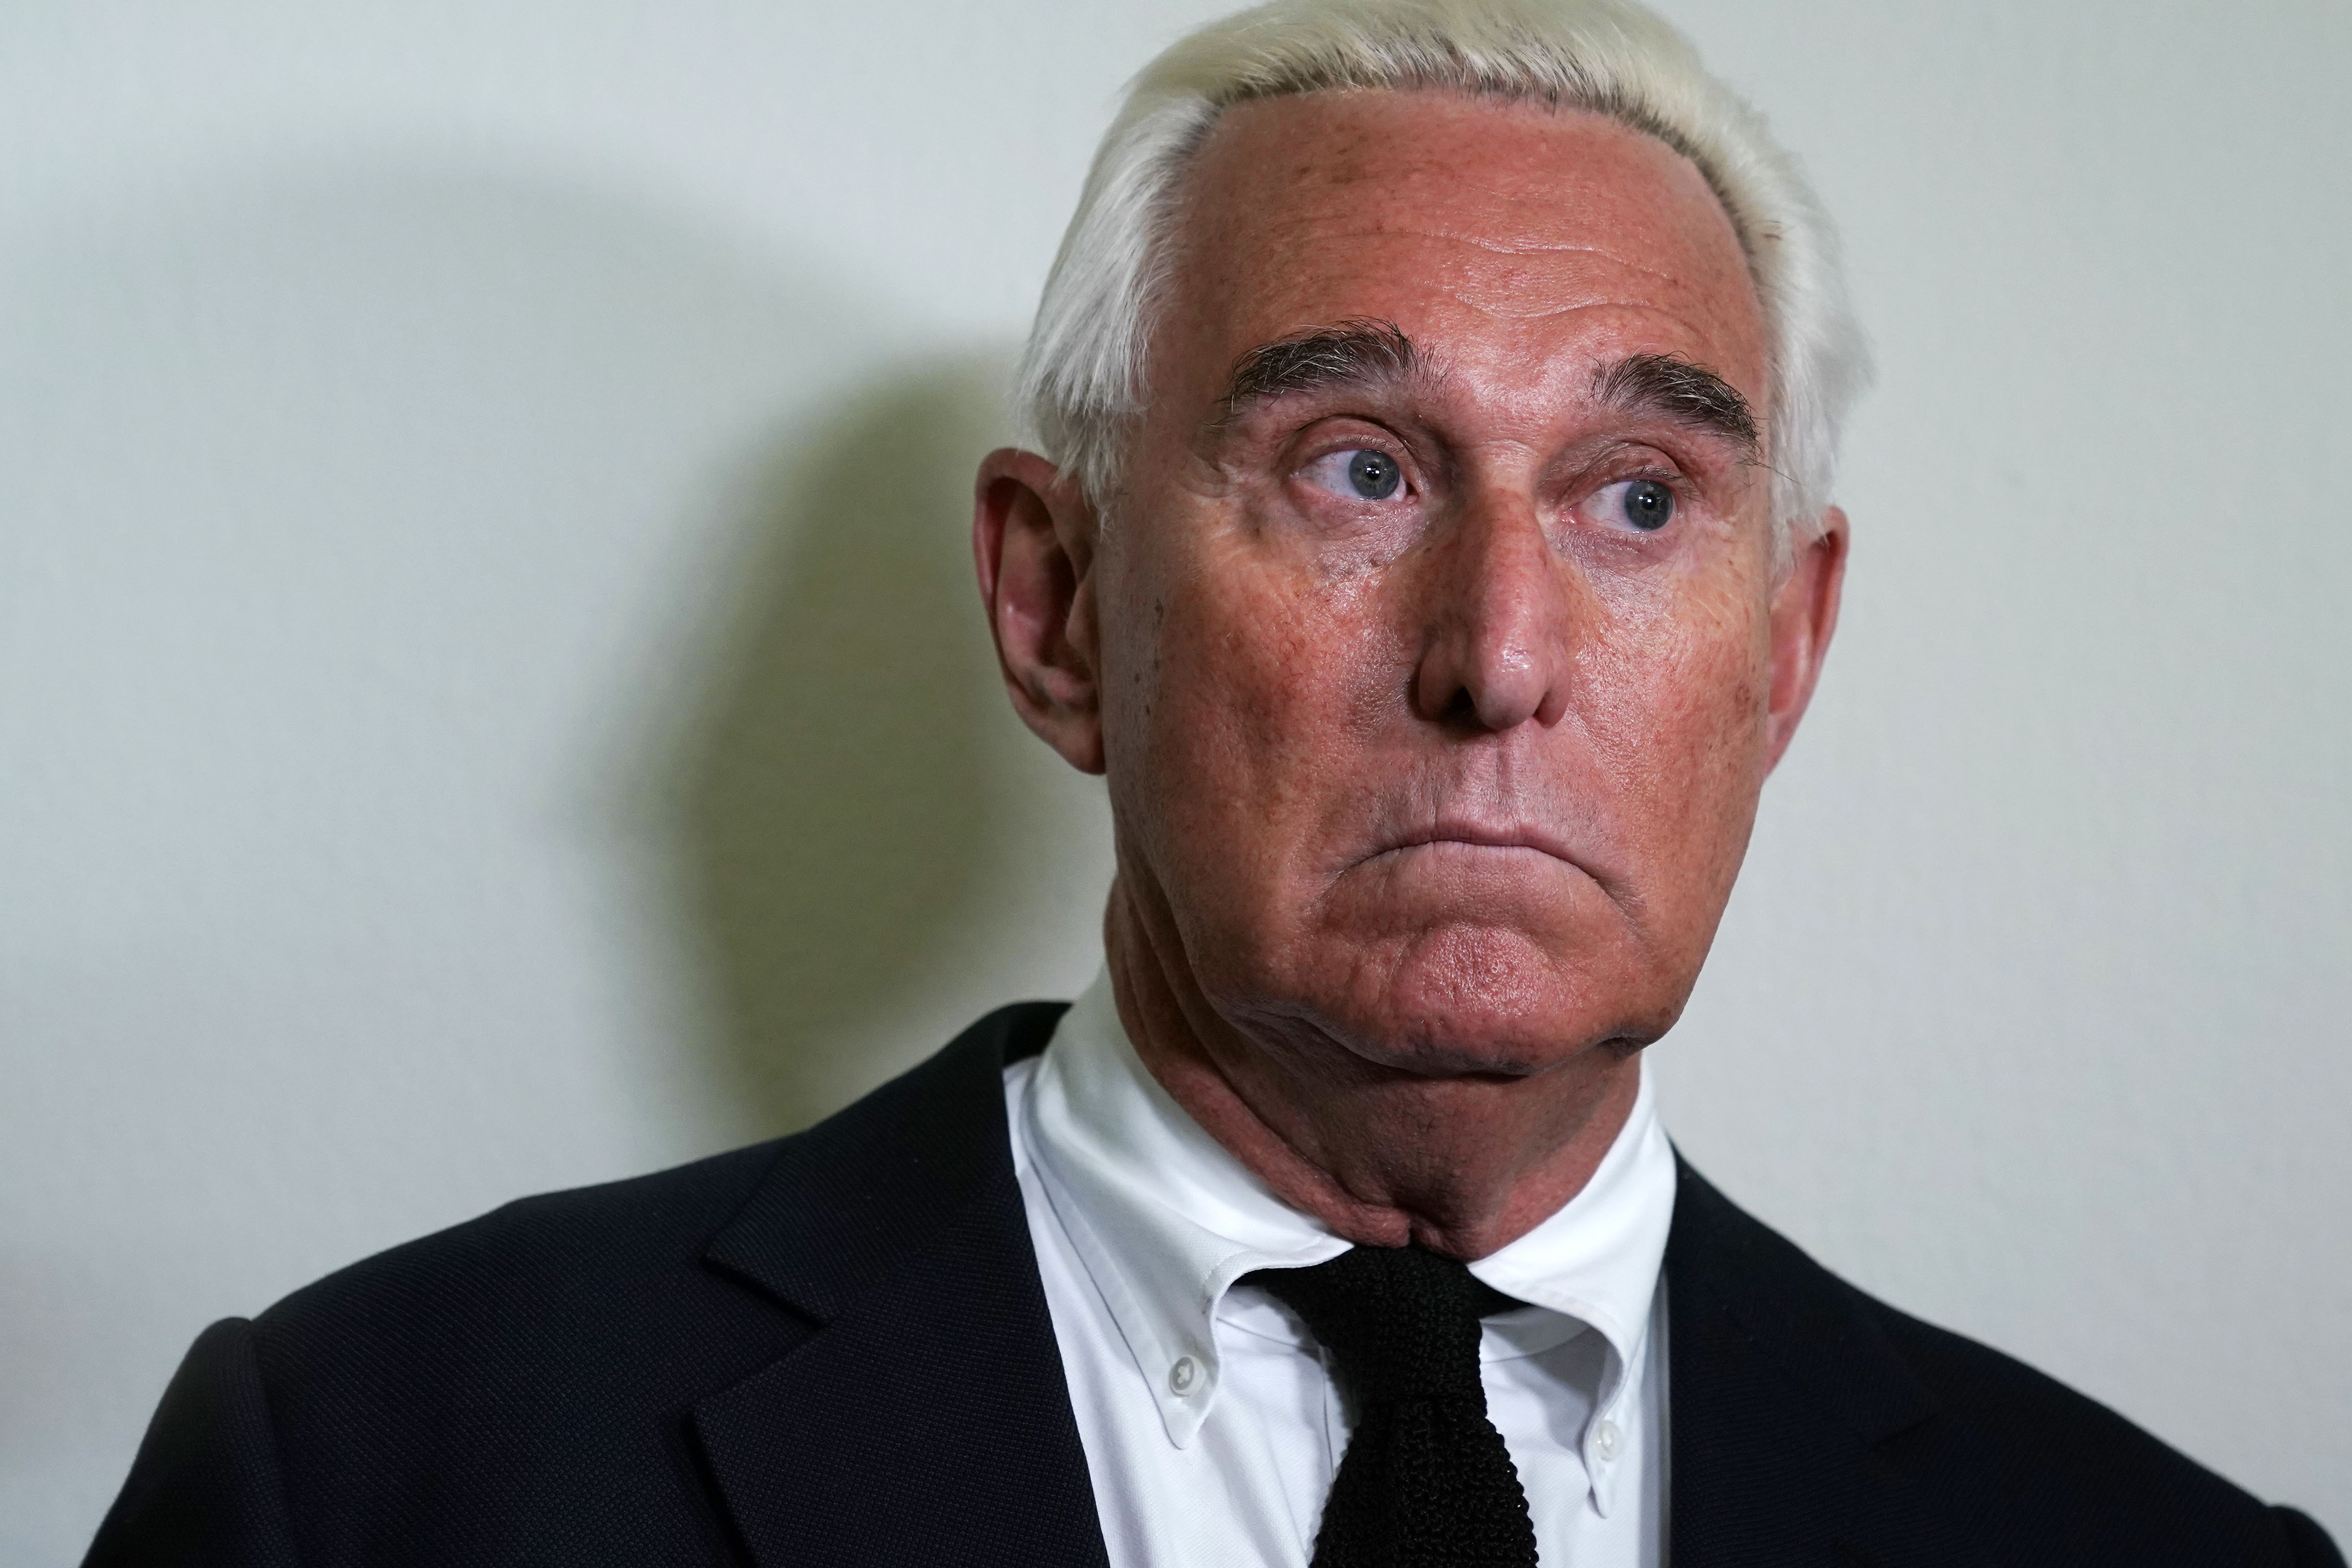 Longtime informal adviser to President Trump Roger Stone speaks to cameras outside a hearing where Google CEO Sundar Pichai testified before the House Judiciary Committee at the Rayburn House Office Building on December 11, 2018 in Washington, DC.